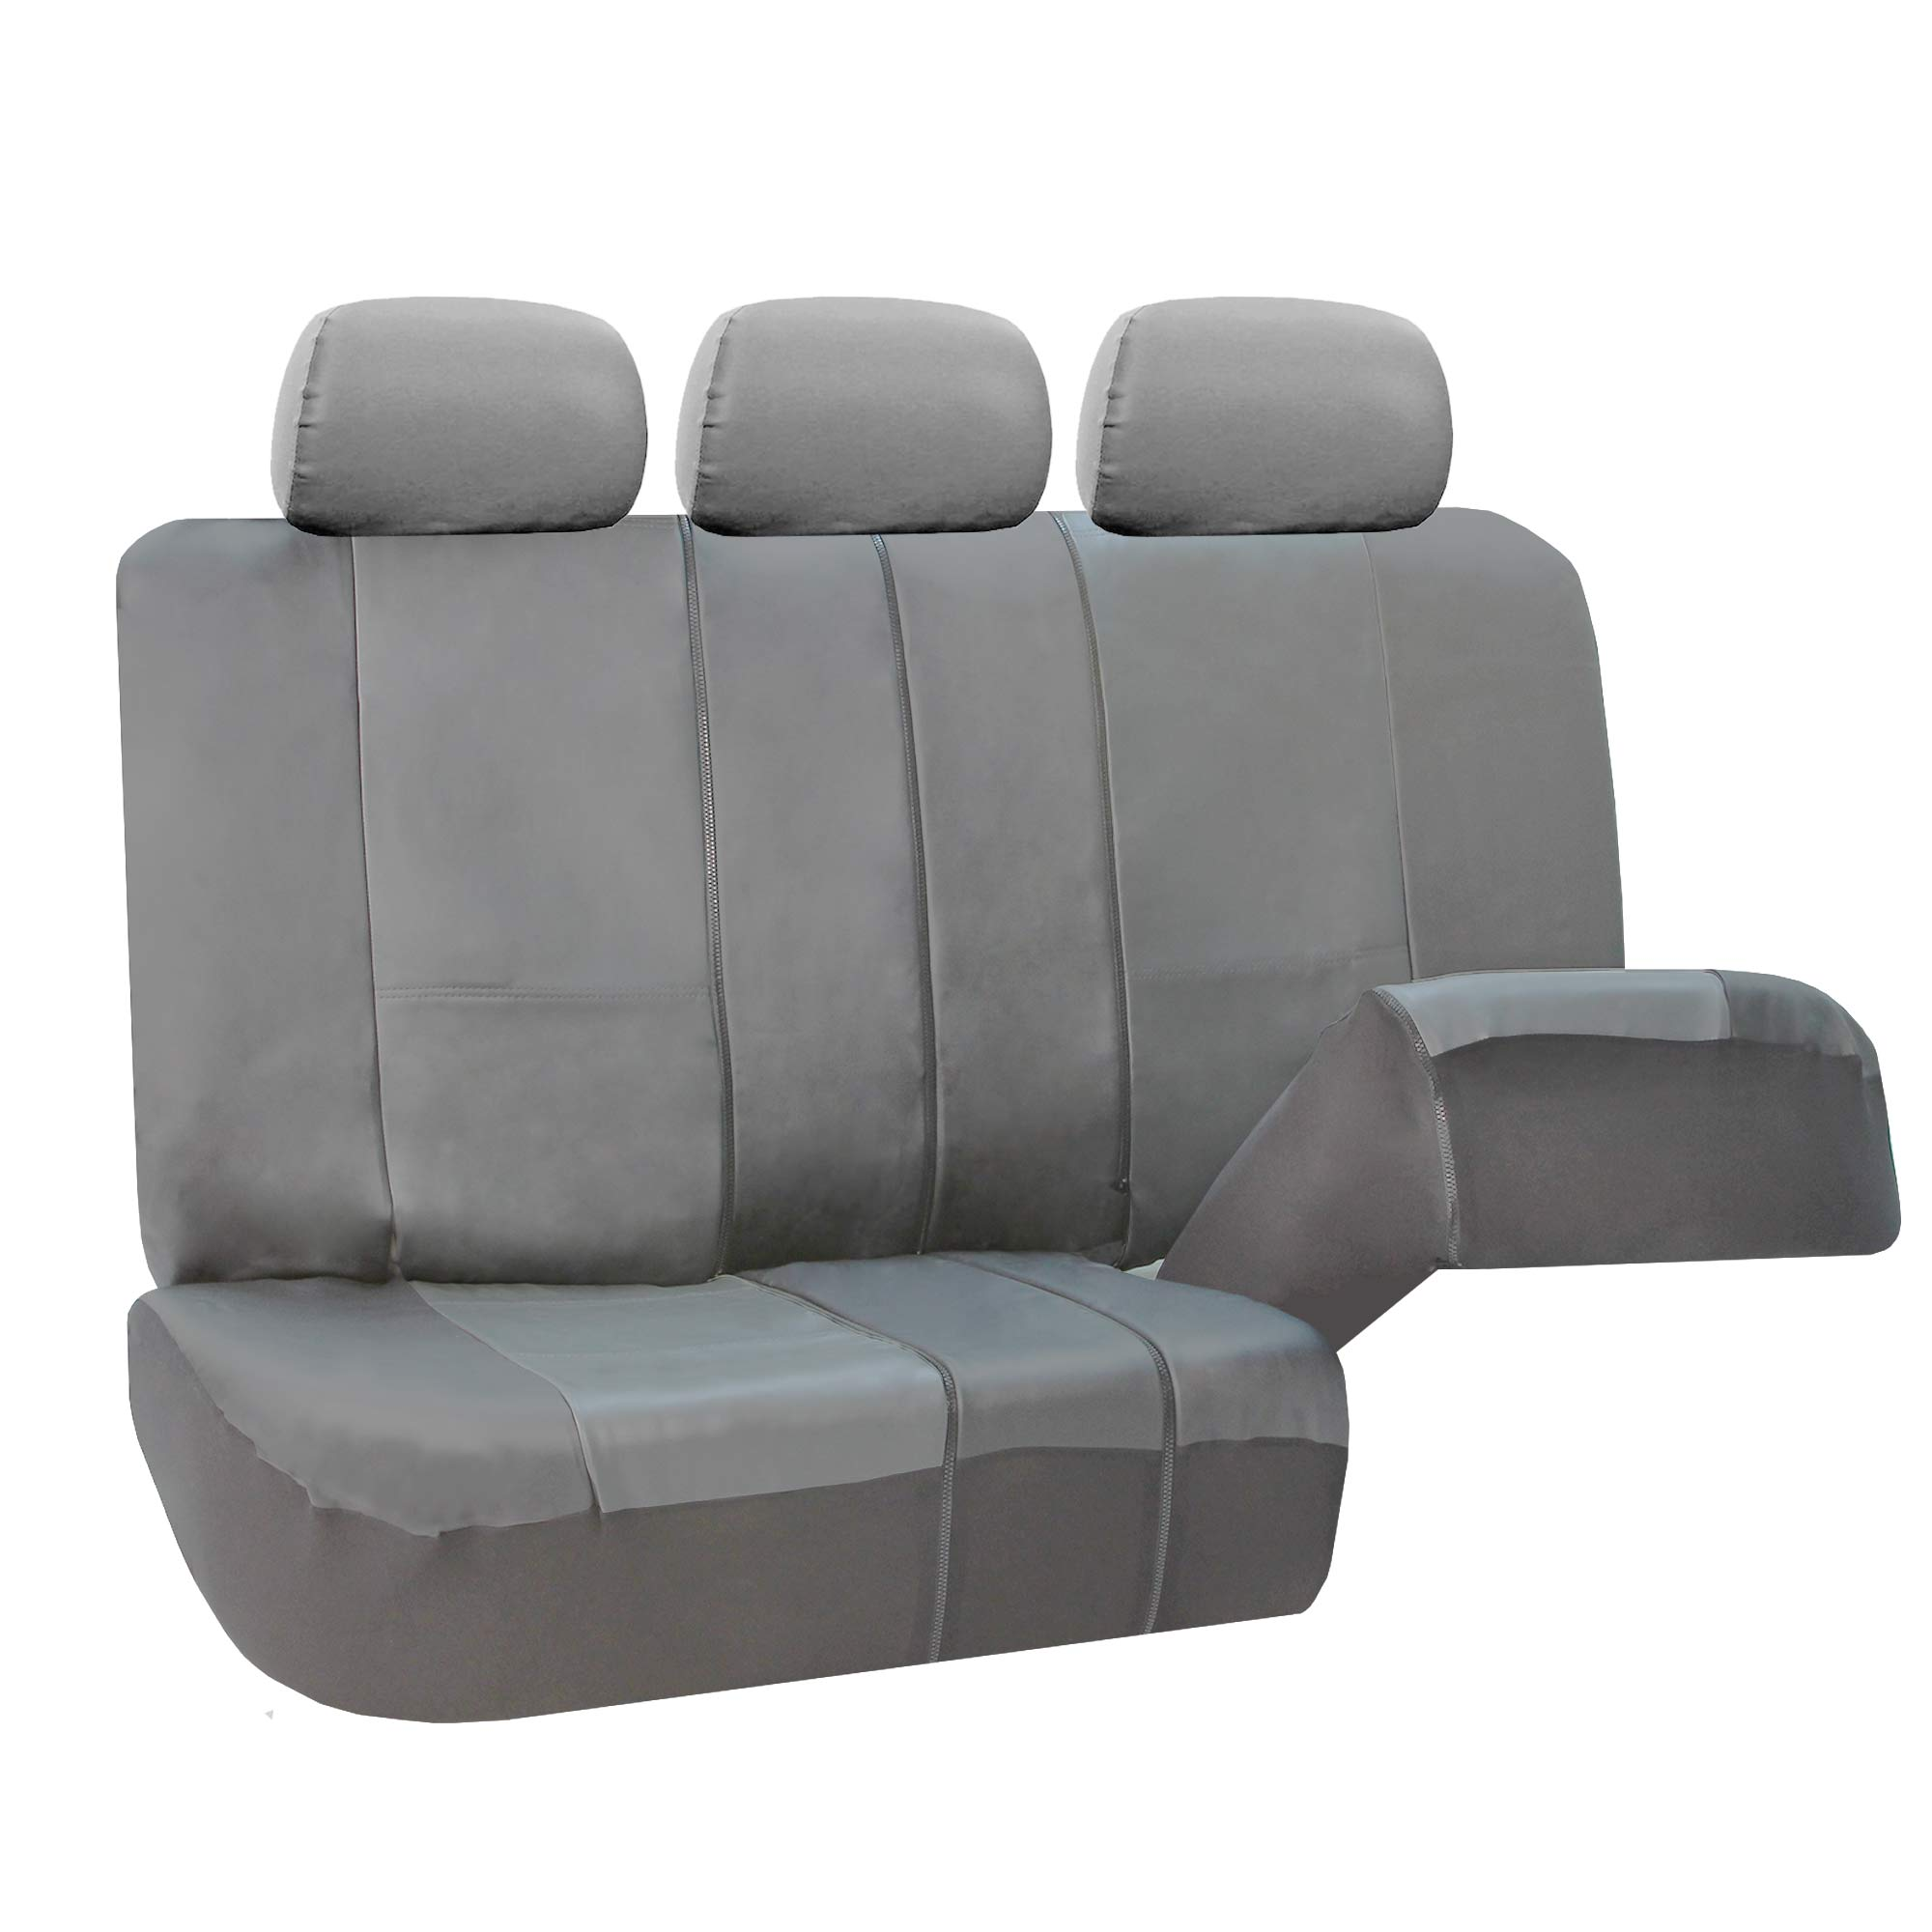 3 Row Pu Leather Seat Covers Airbag Safe Split Bench